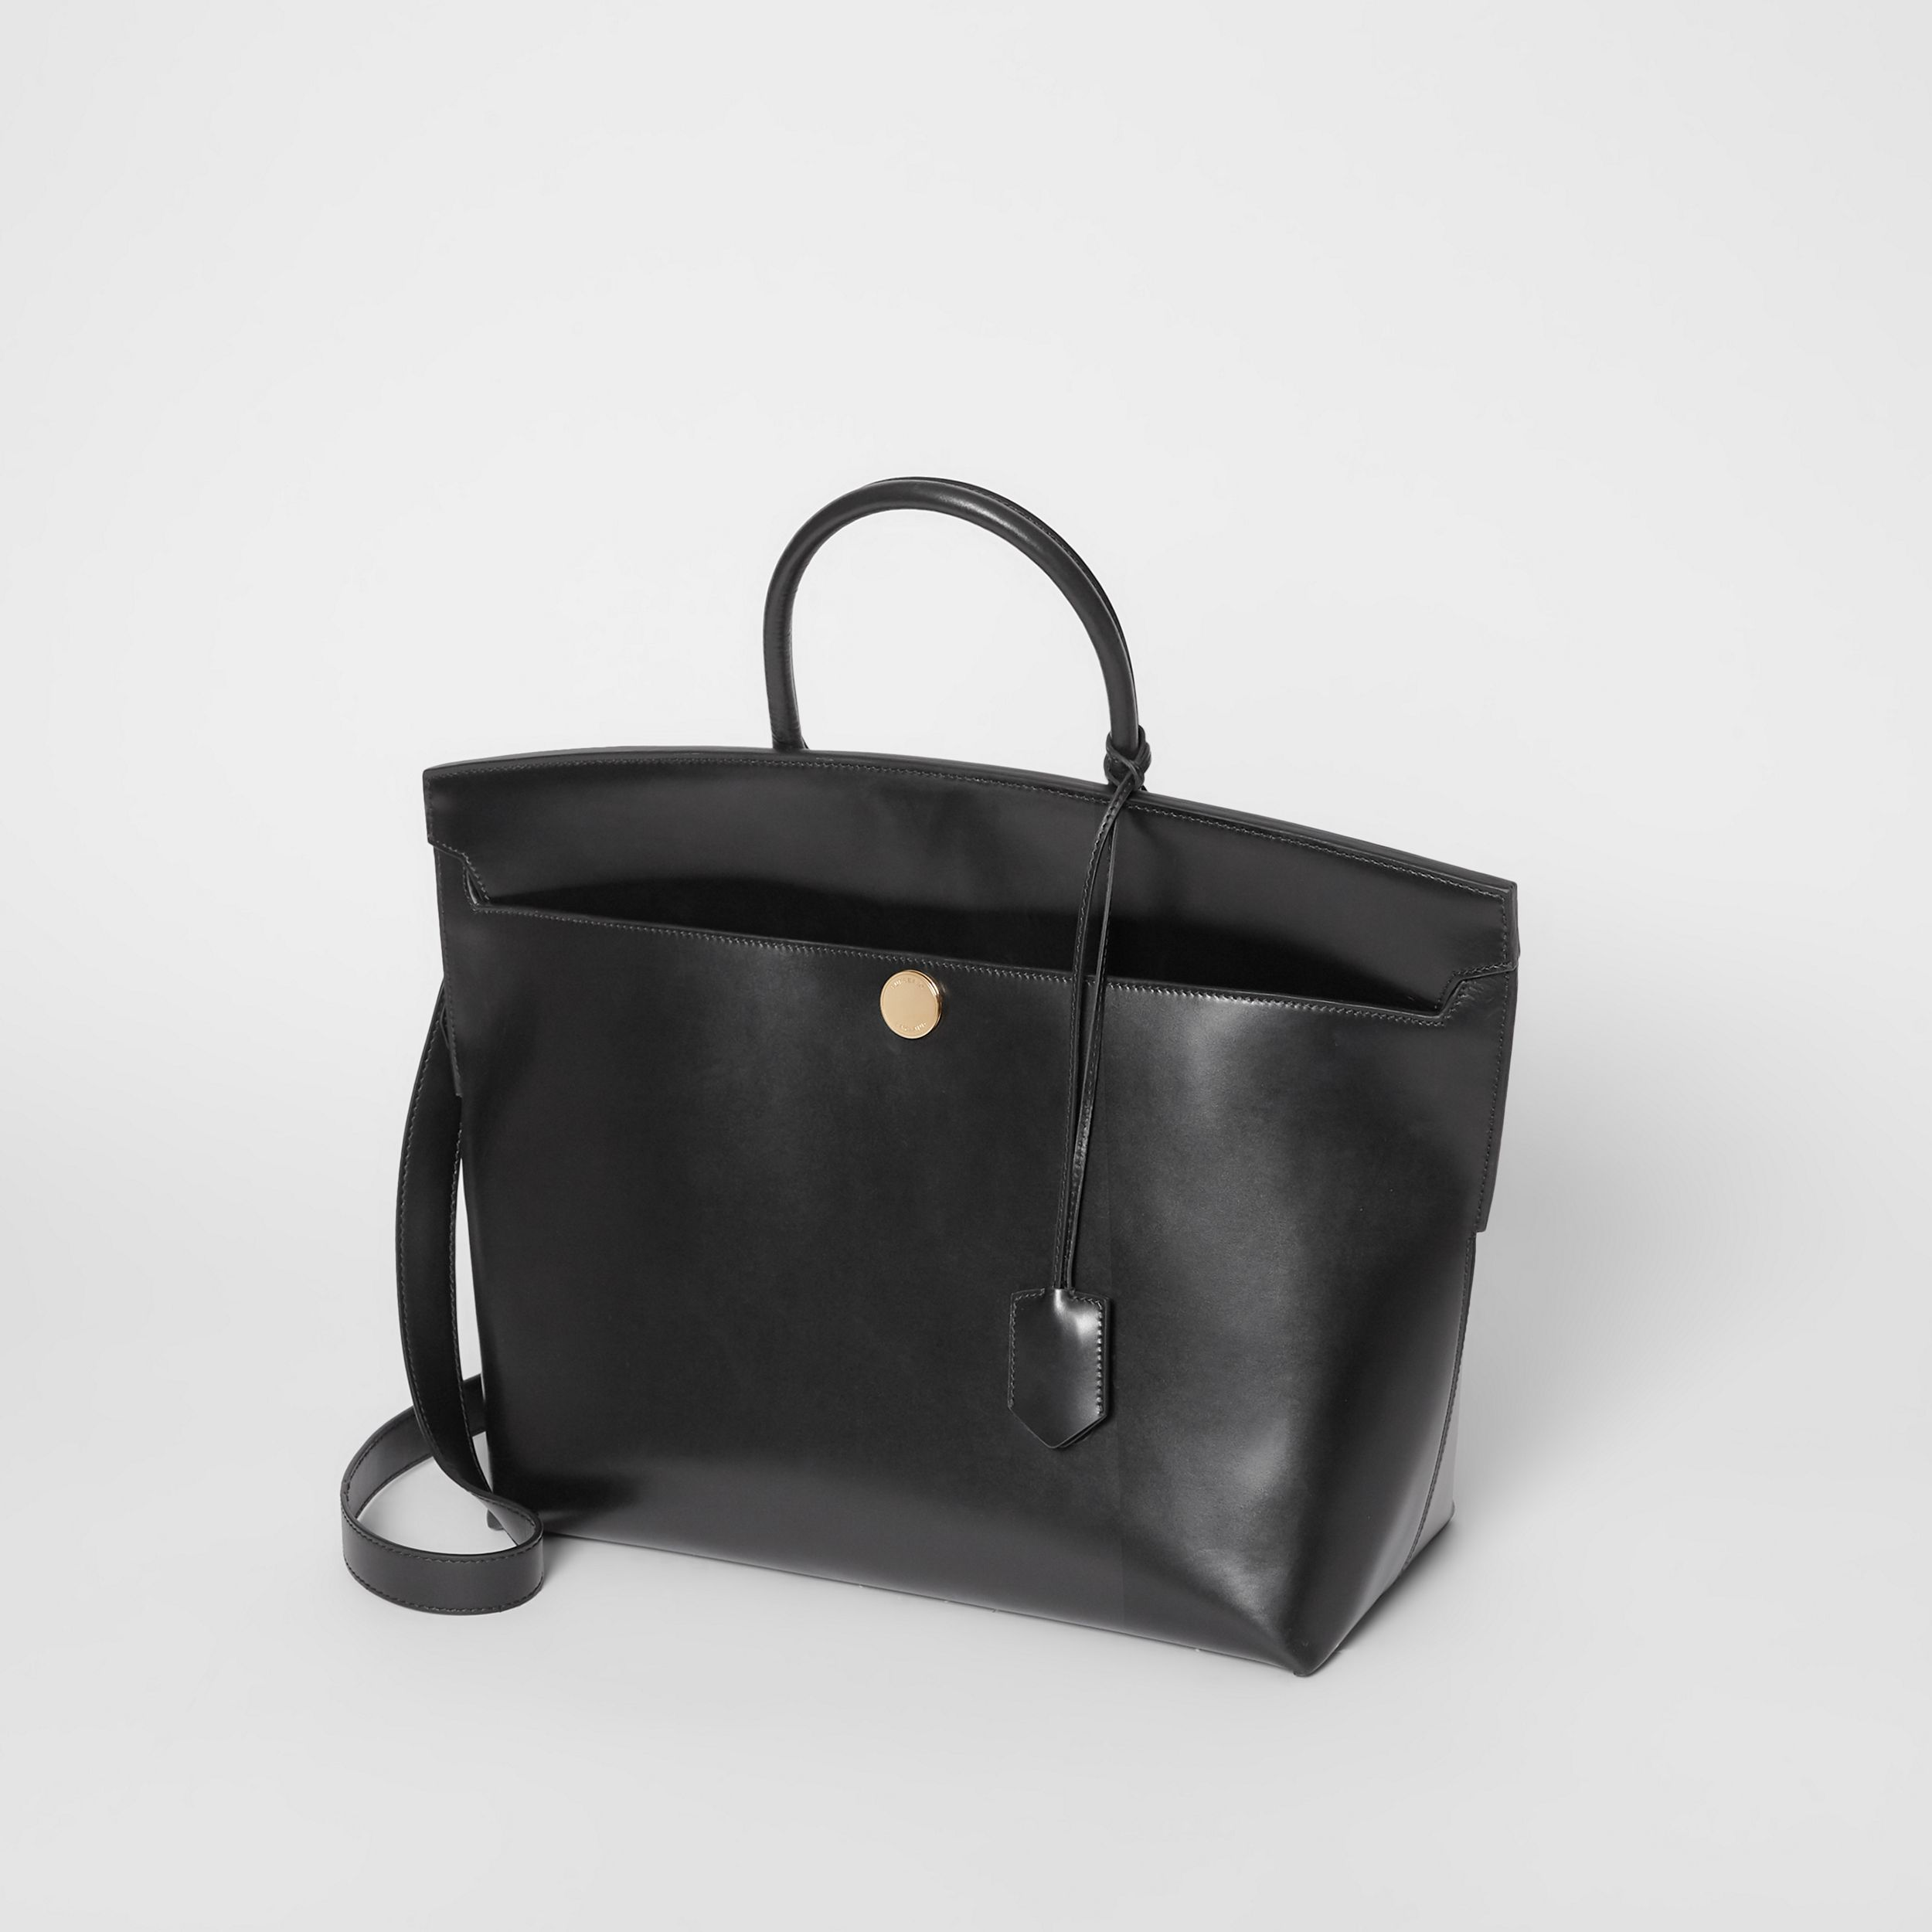 Leather Society Top Handle Bag in Black - Women | Burberry - 4